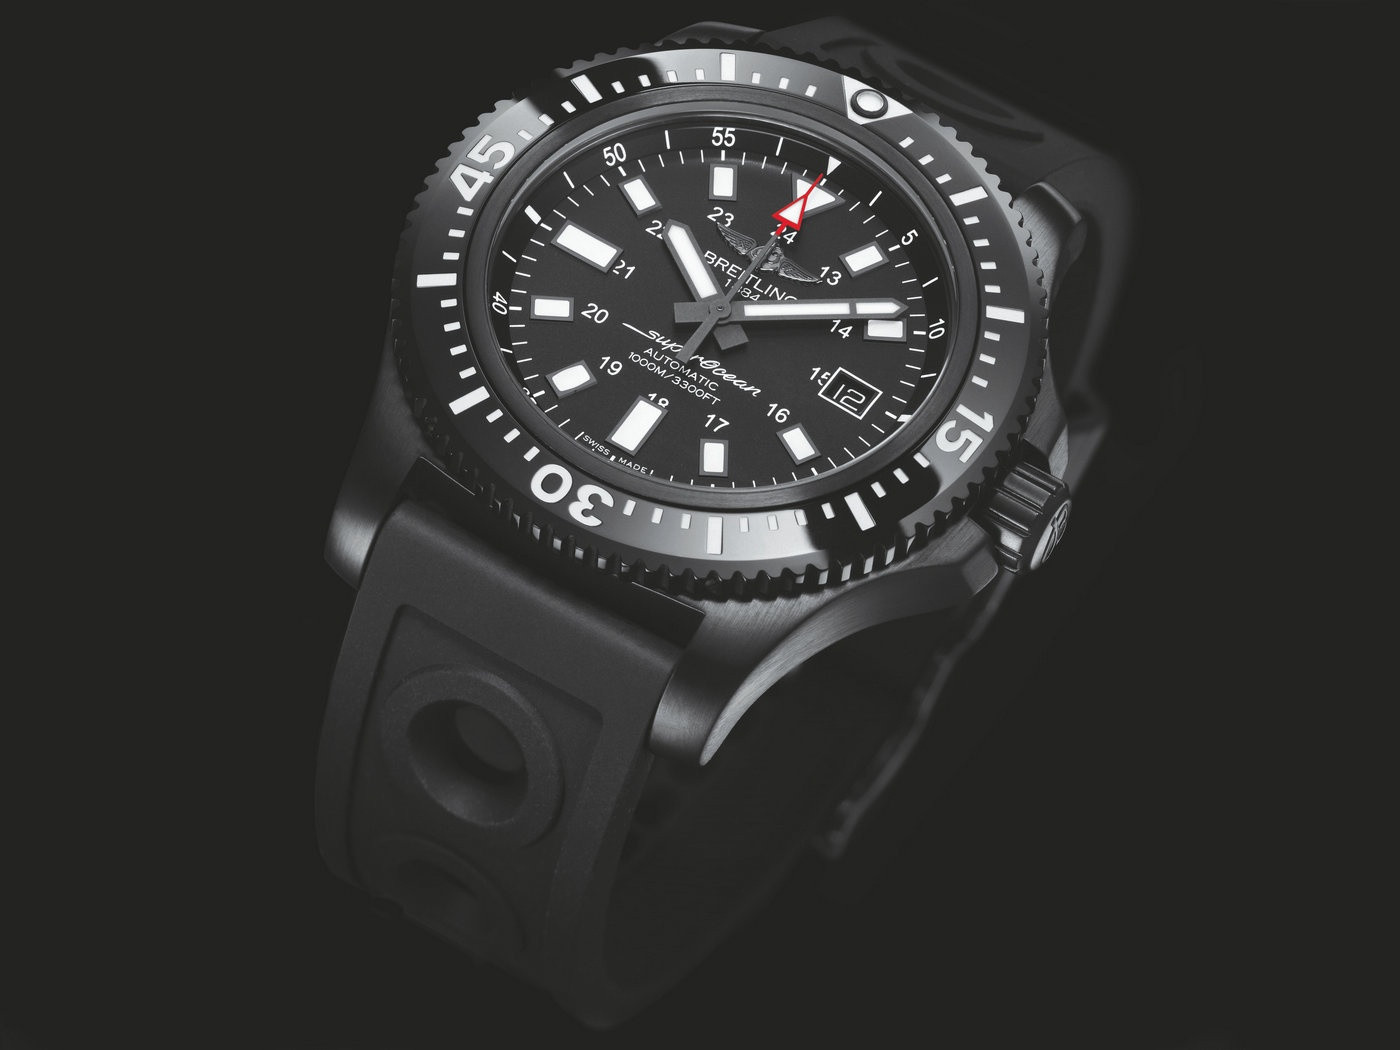 Breitling Superocean Replica Watches With Black Dials